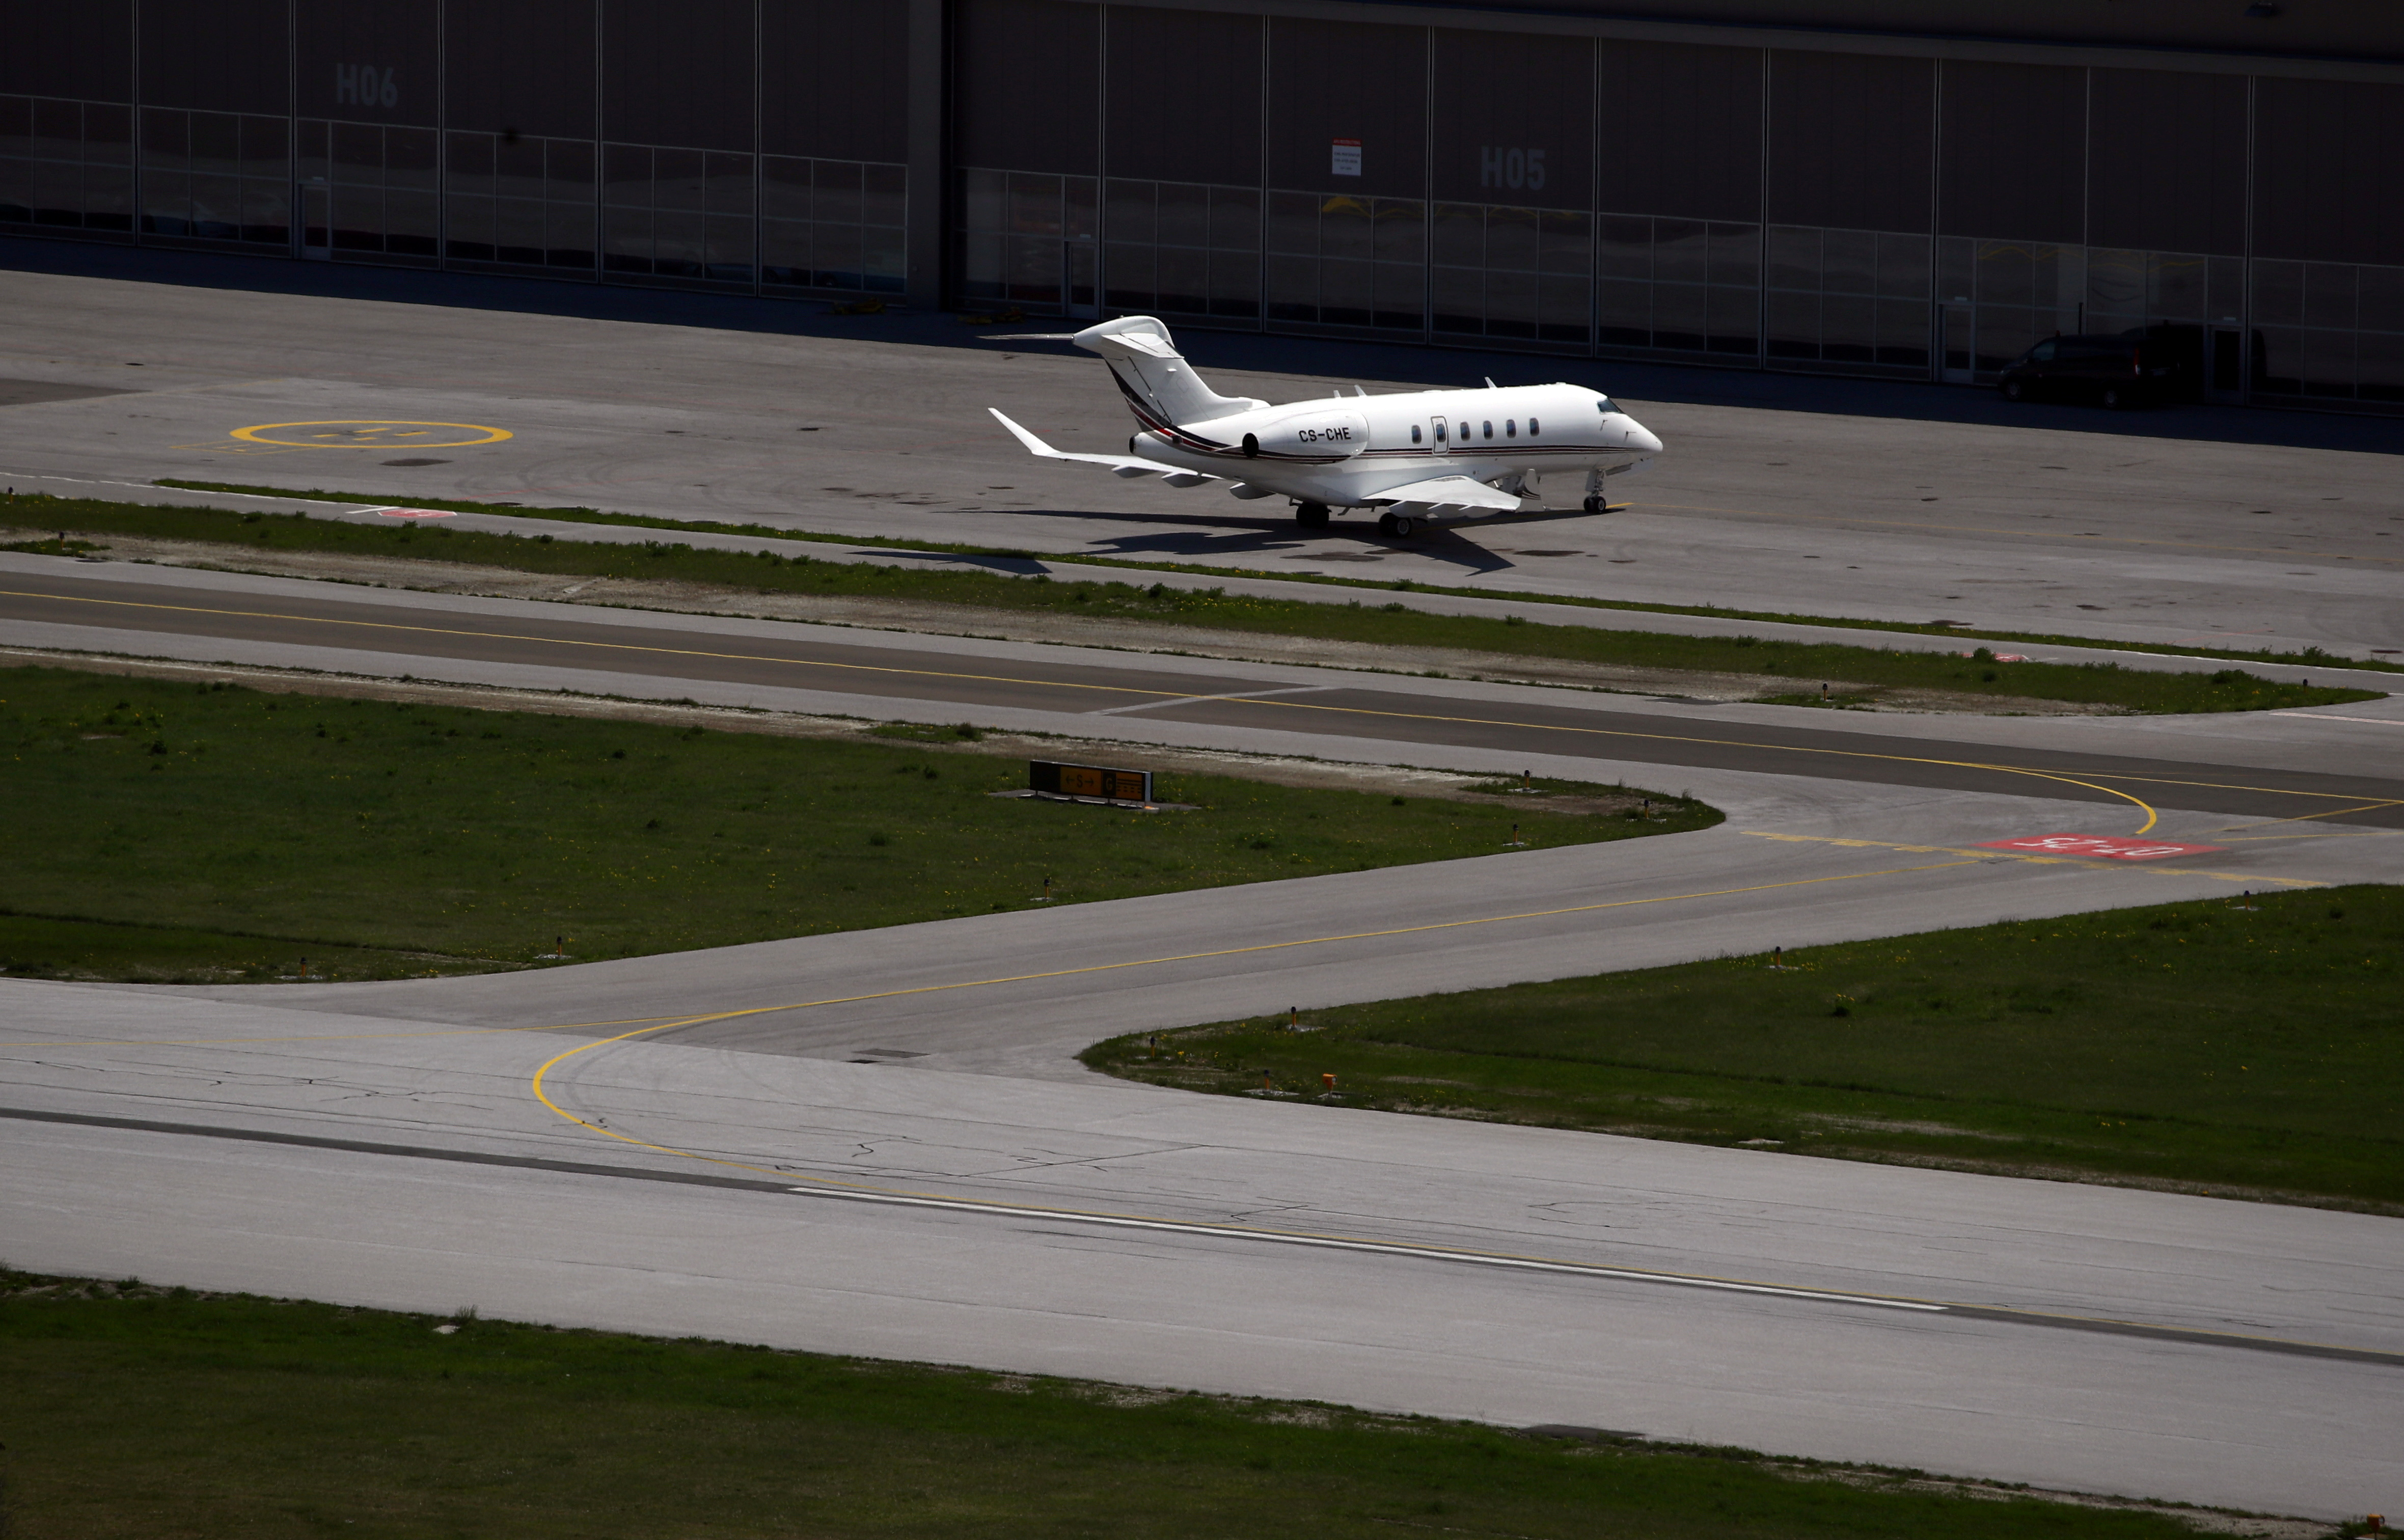 A Bombardier BD-100-1A10 Challenger 350 aircraft (Registration CS-CHE) of NetJets is pictured at Sion airport in Sion, Switzerland April 18, 2019. REUTERS/Denis Balibouse